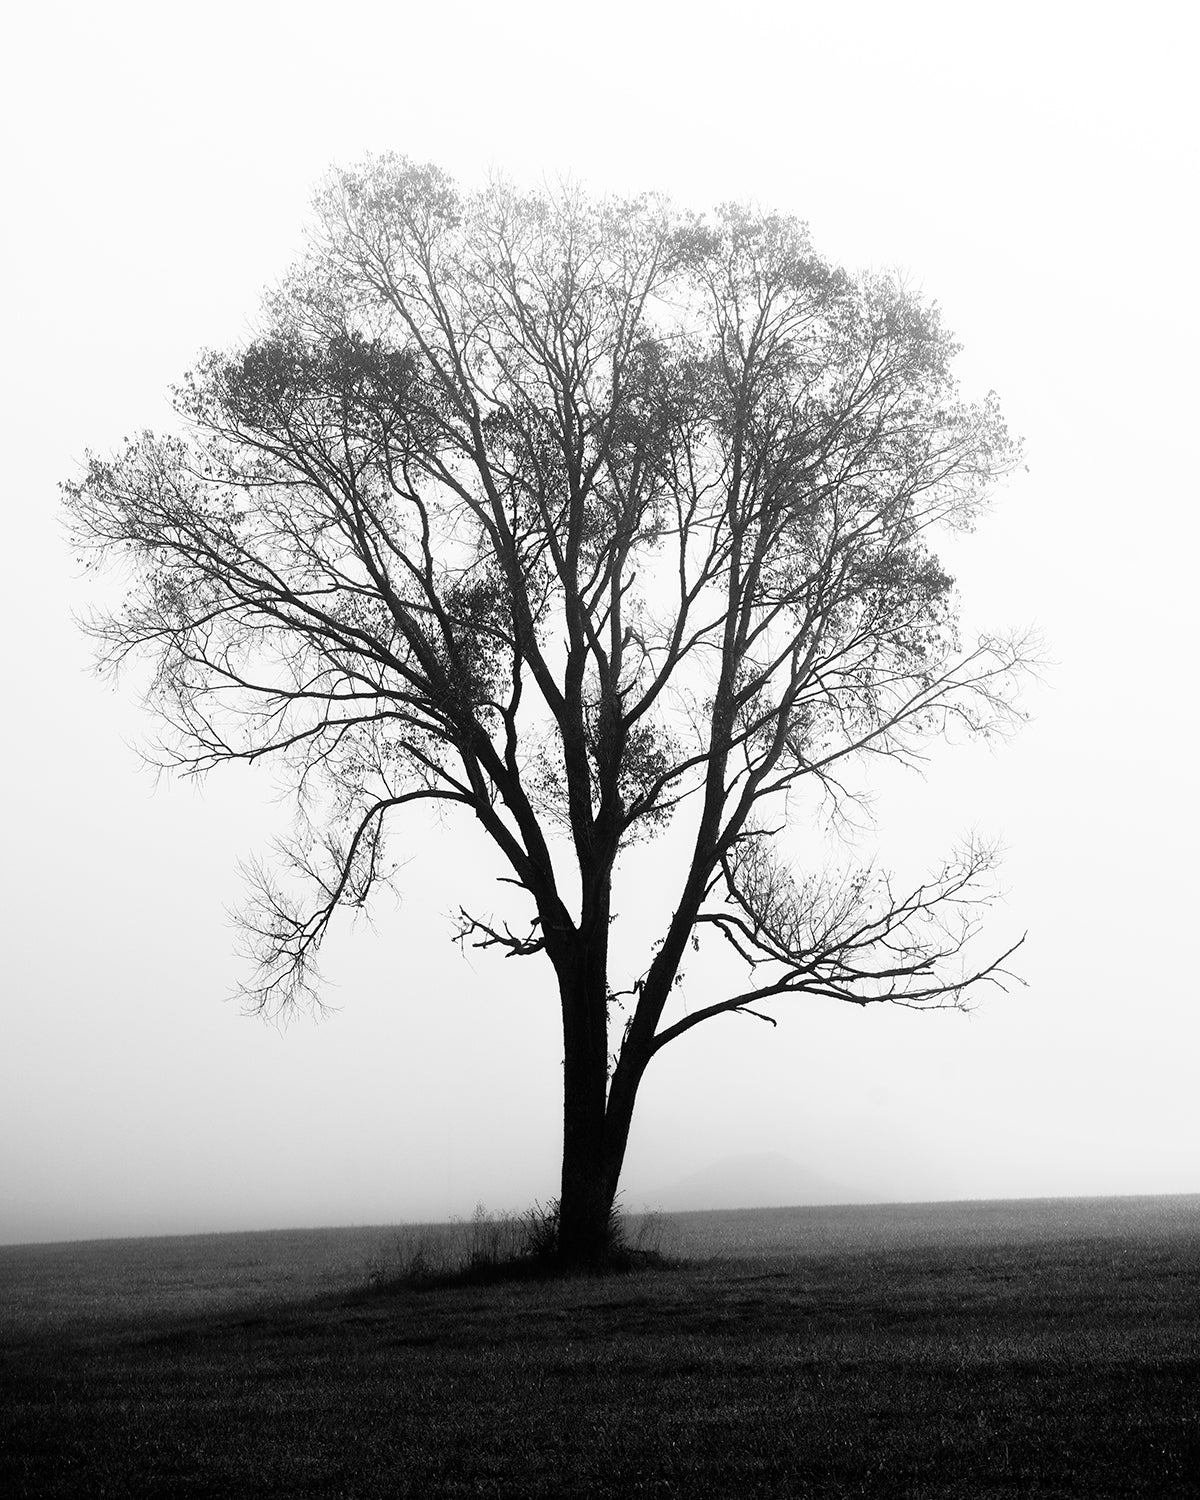 Single Tree in a Foggy Landscape - Black and White Landscape Photograp